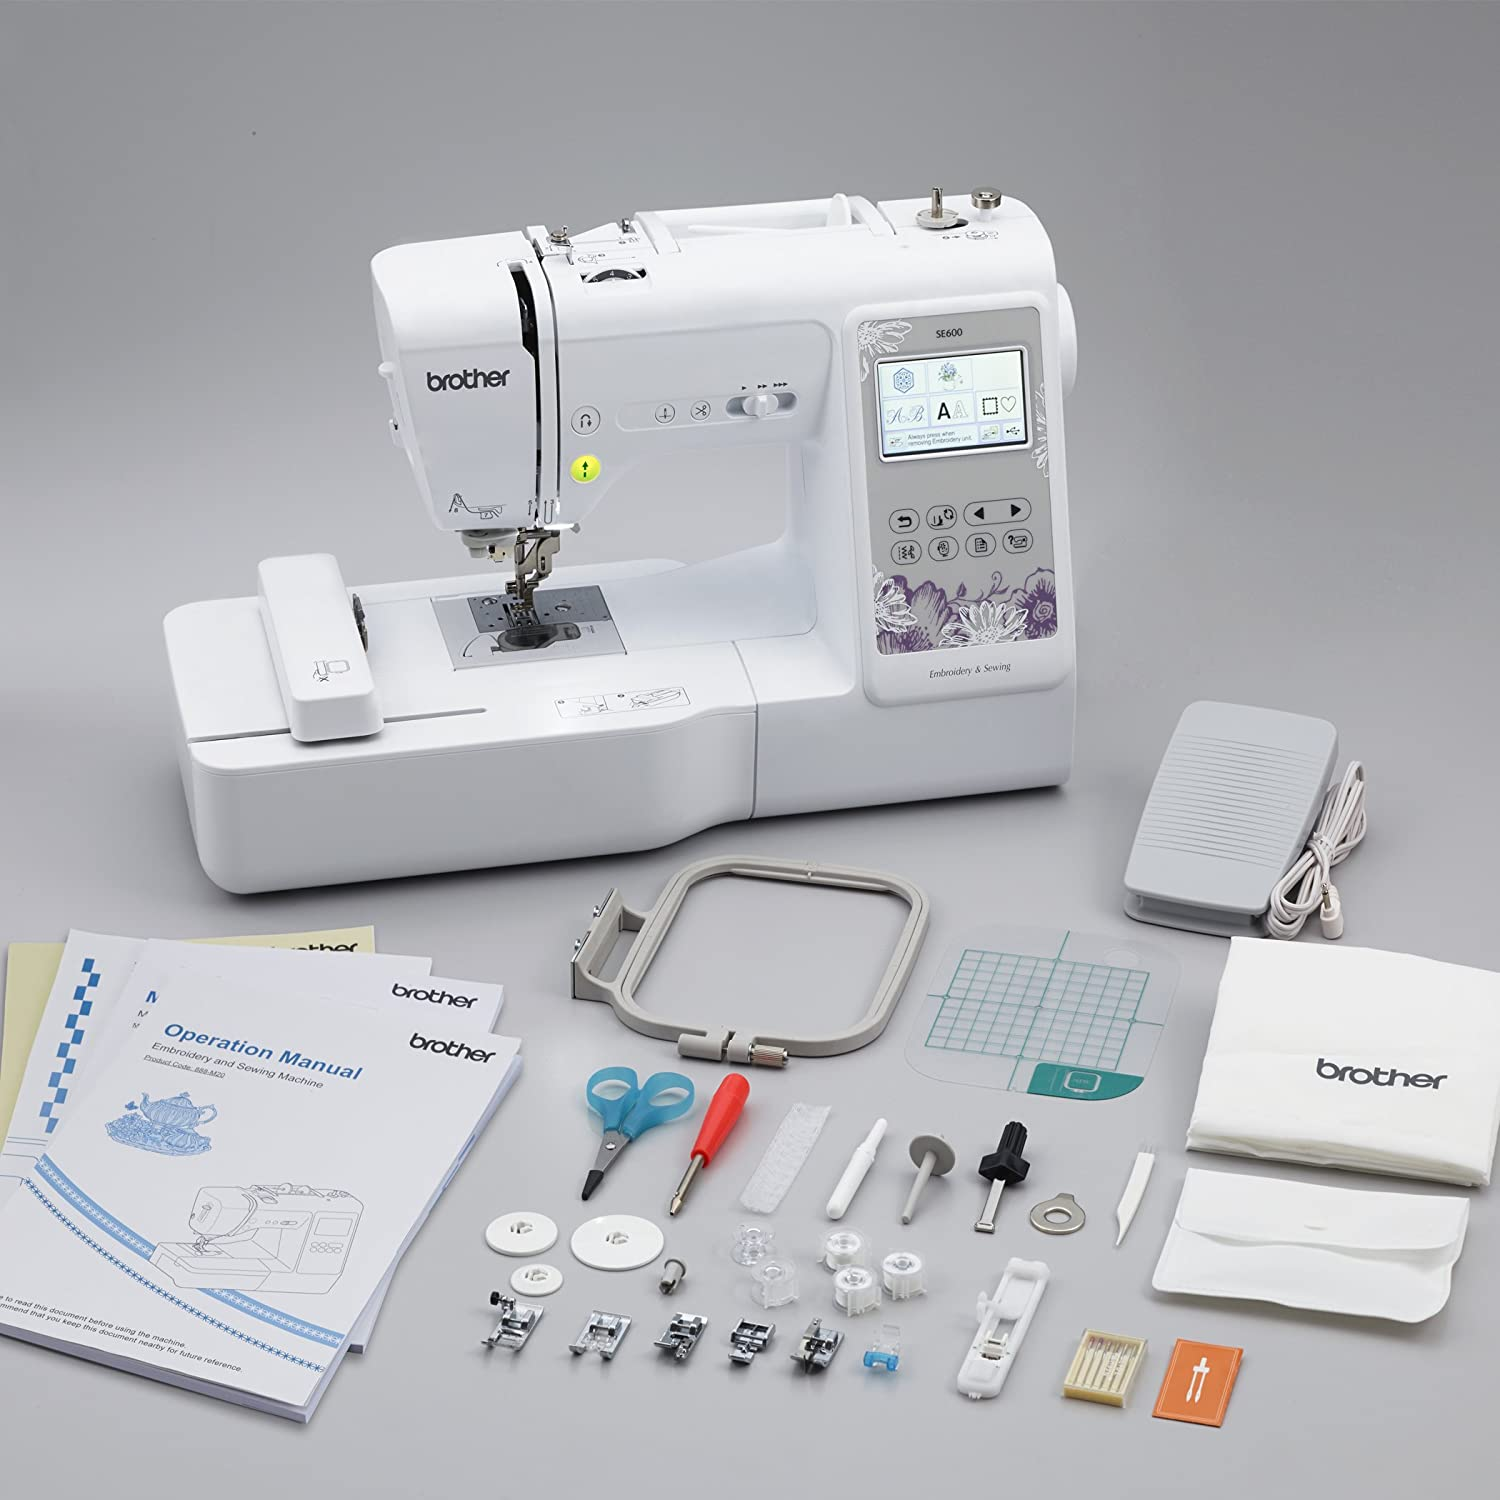 SE600 with Initial Stitch Embroidery Lettering /& Monogramming Software